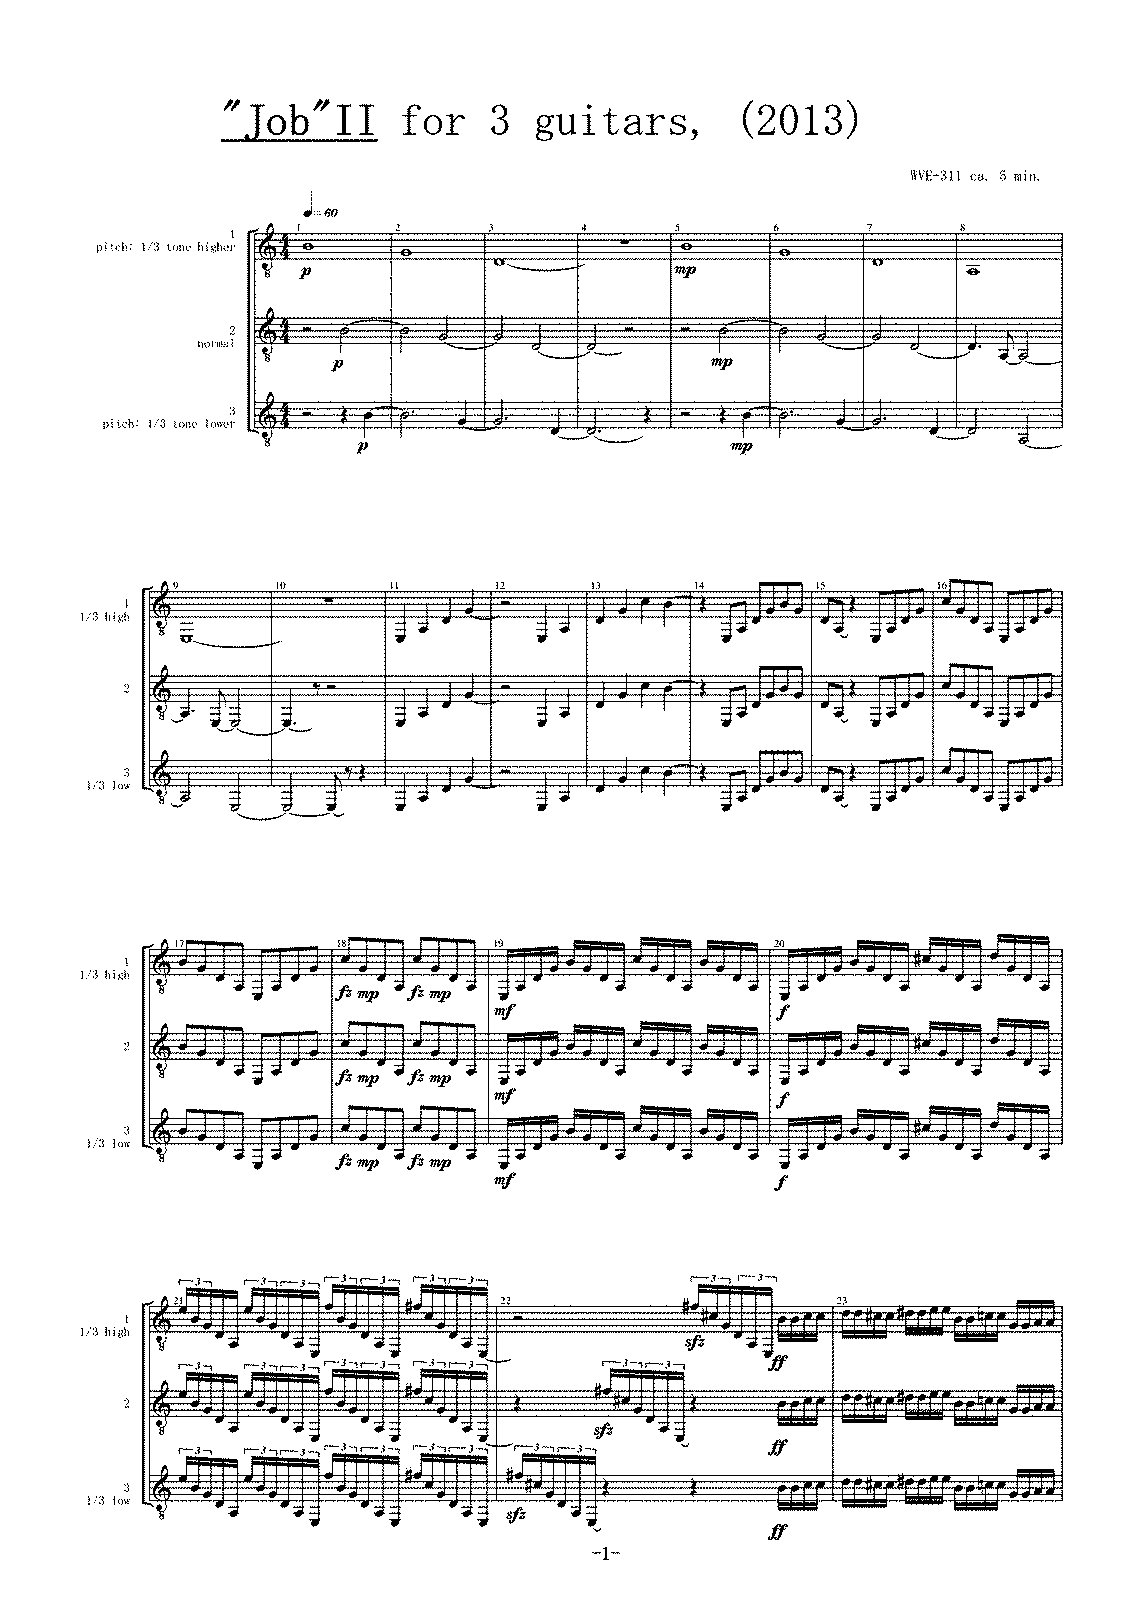 PMLP576537-WVE-311, Job II for 3 guitars, Score.pdf